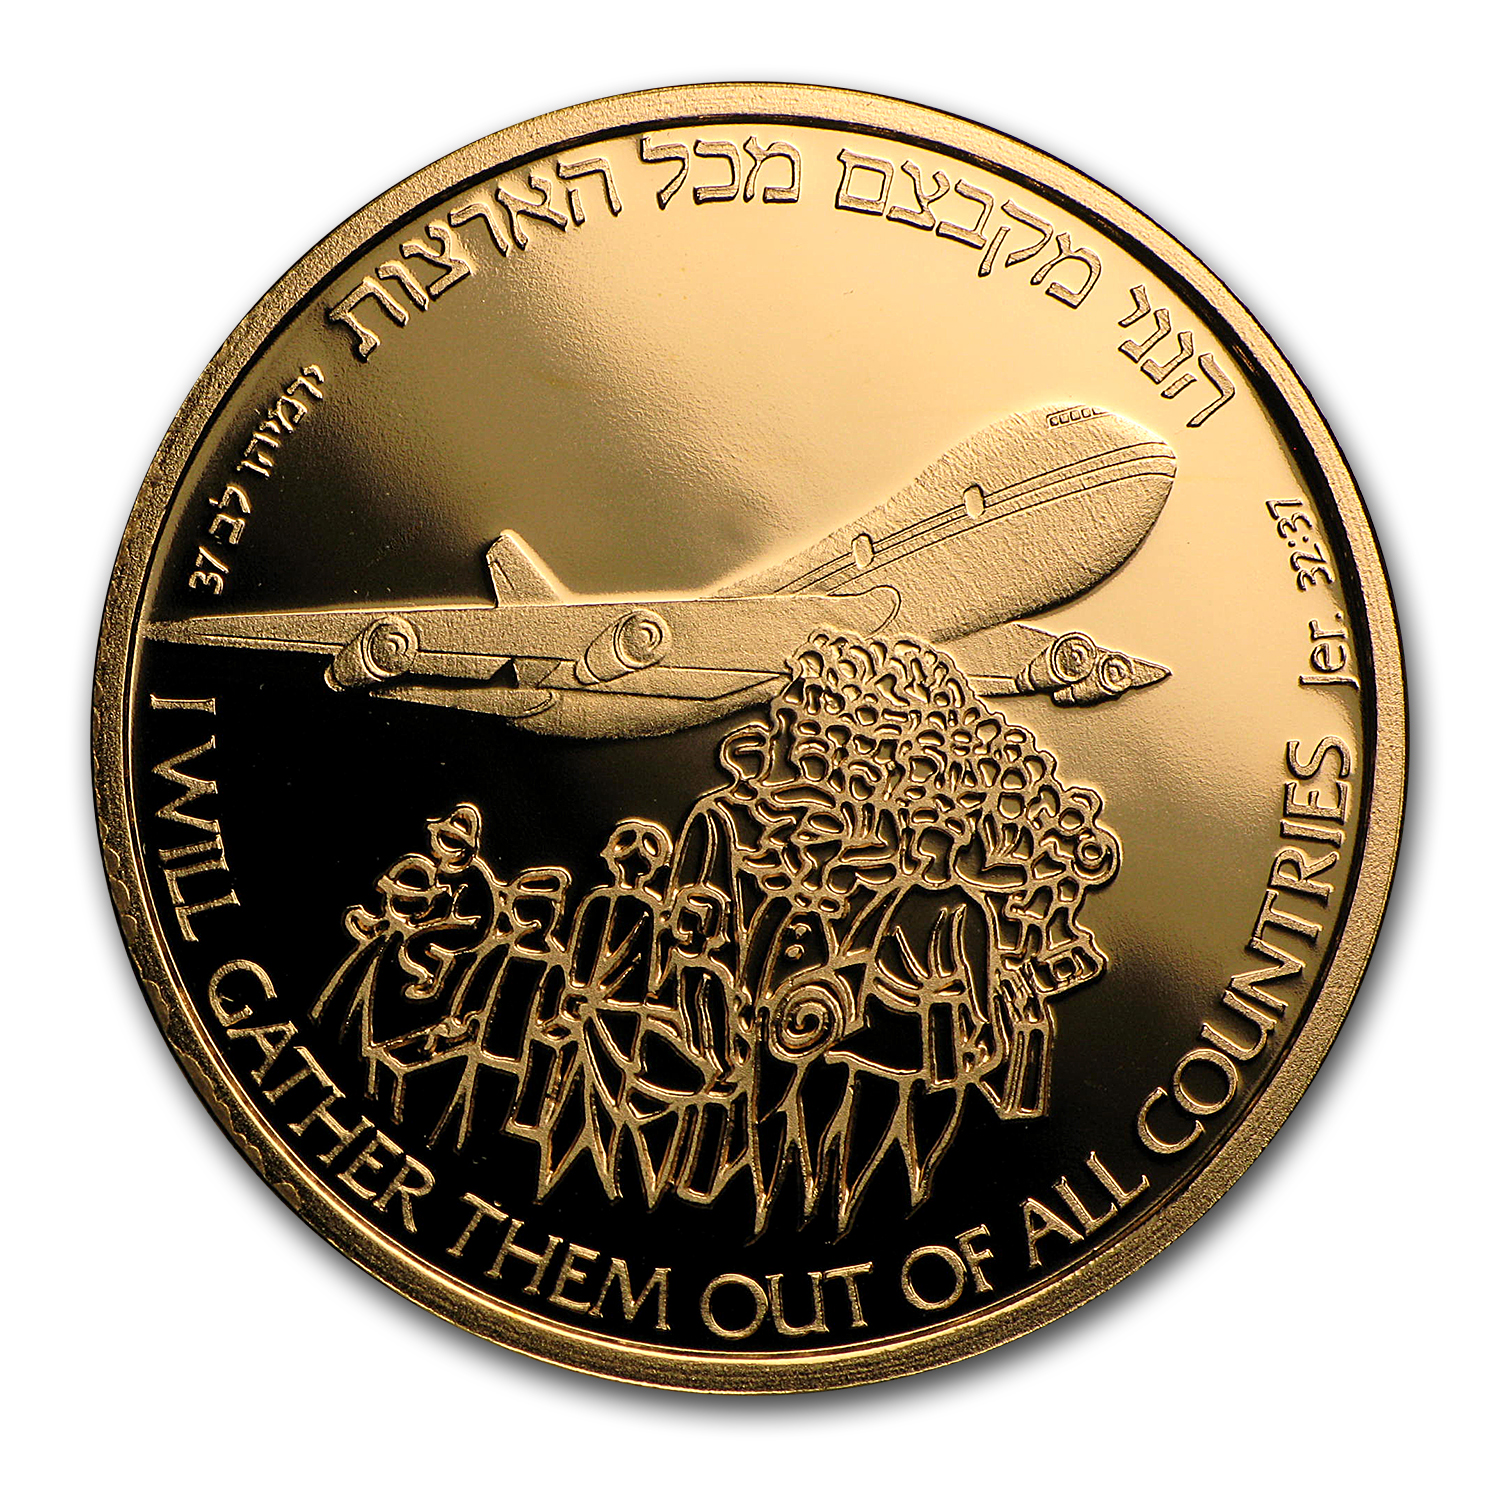 1991 Israel 1/2 oz Proof Gold 10 Sheqalim 43 Ann. of Immigration